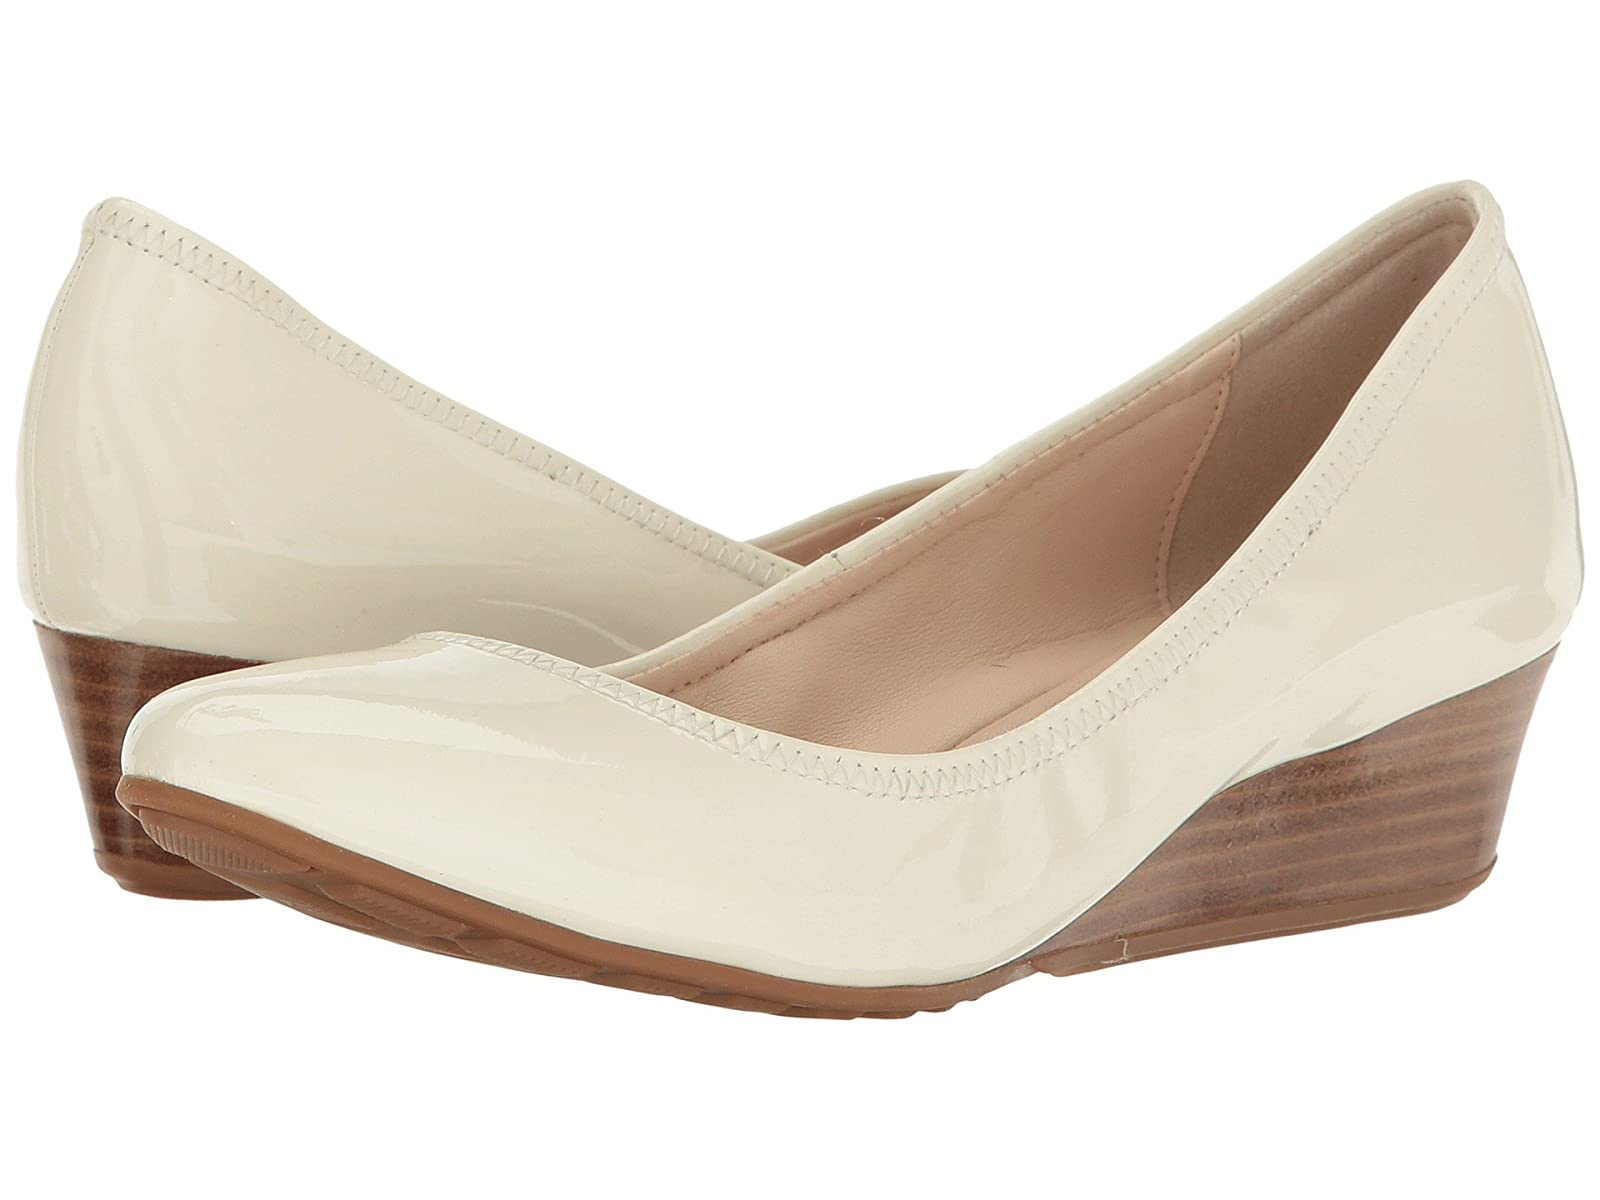 Cole Haan Tali Luxe Wedge 40Cheap and distinctive eye-catching shoes